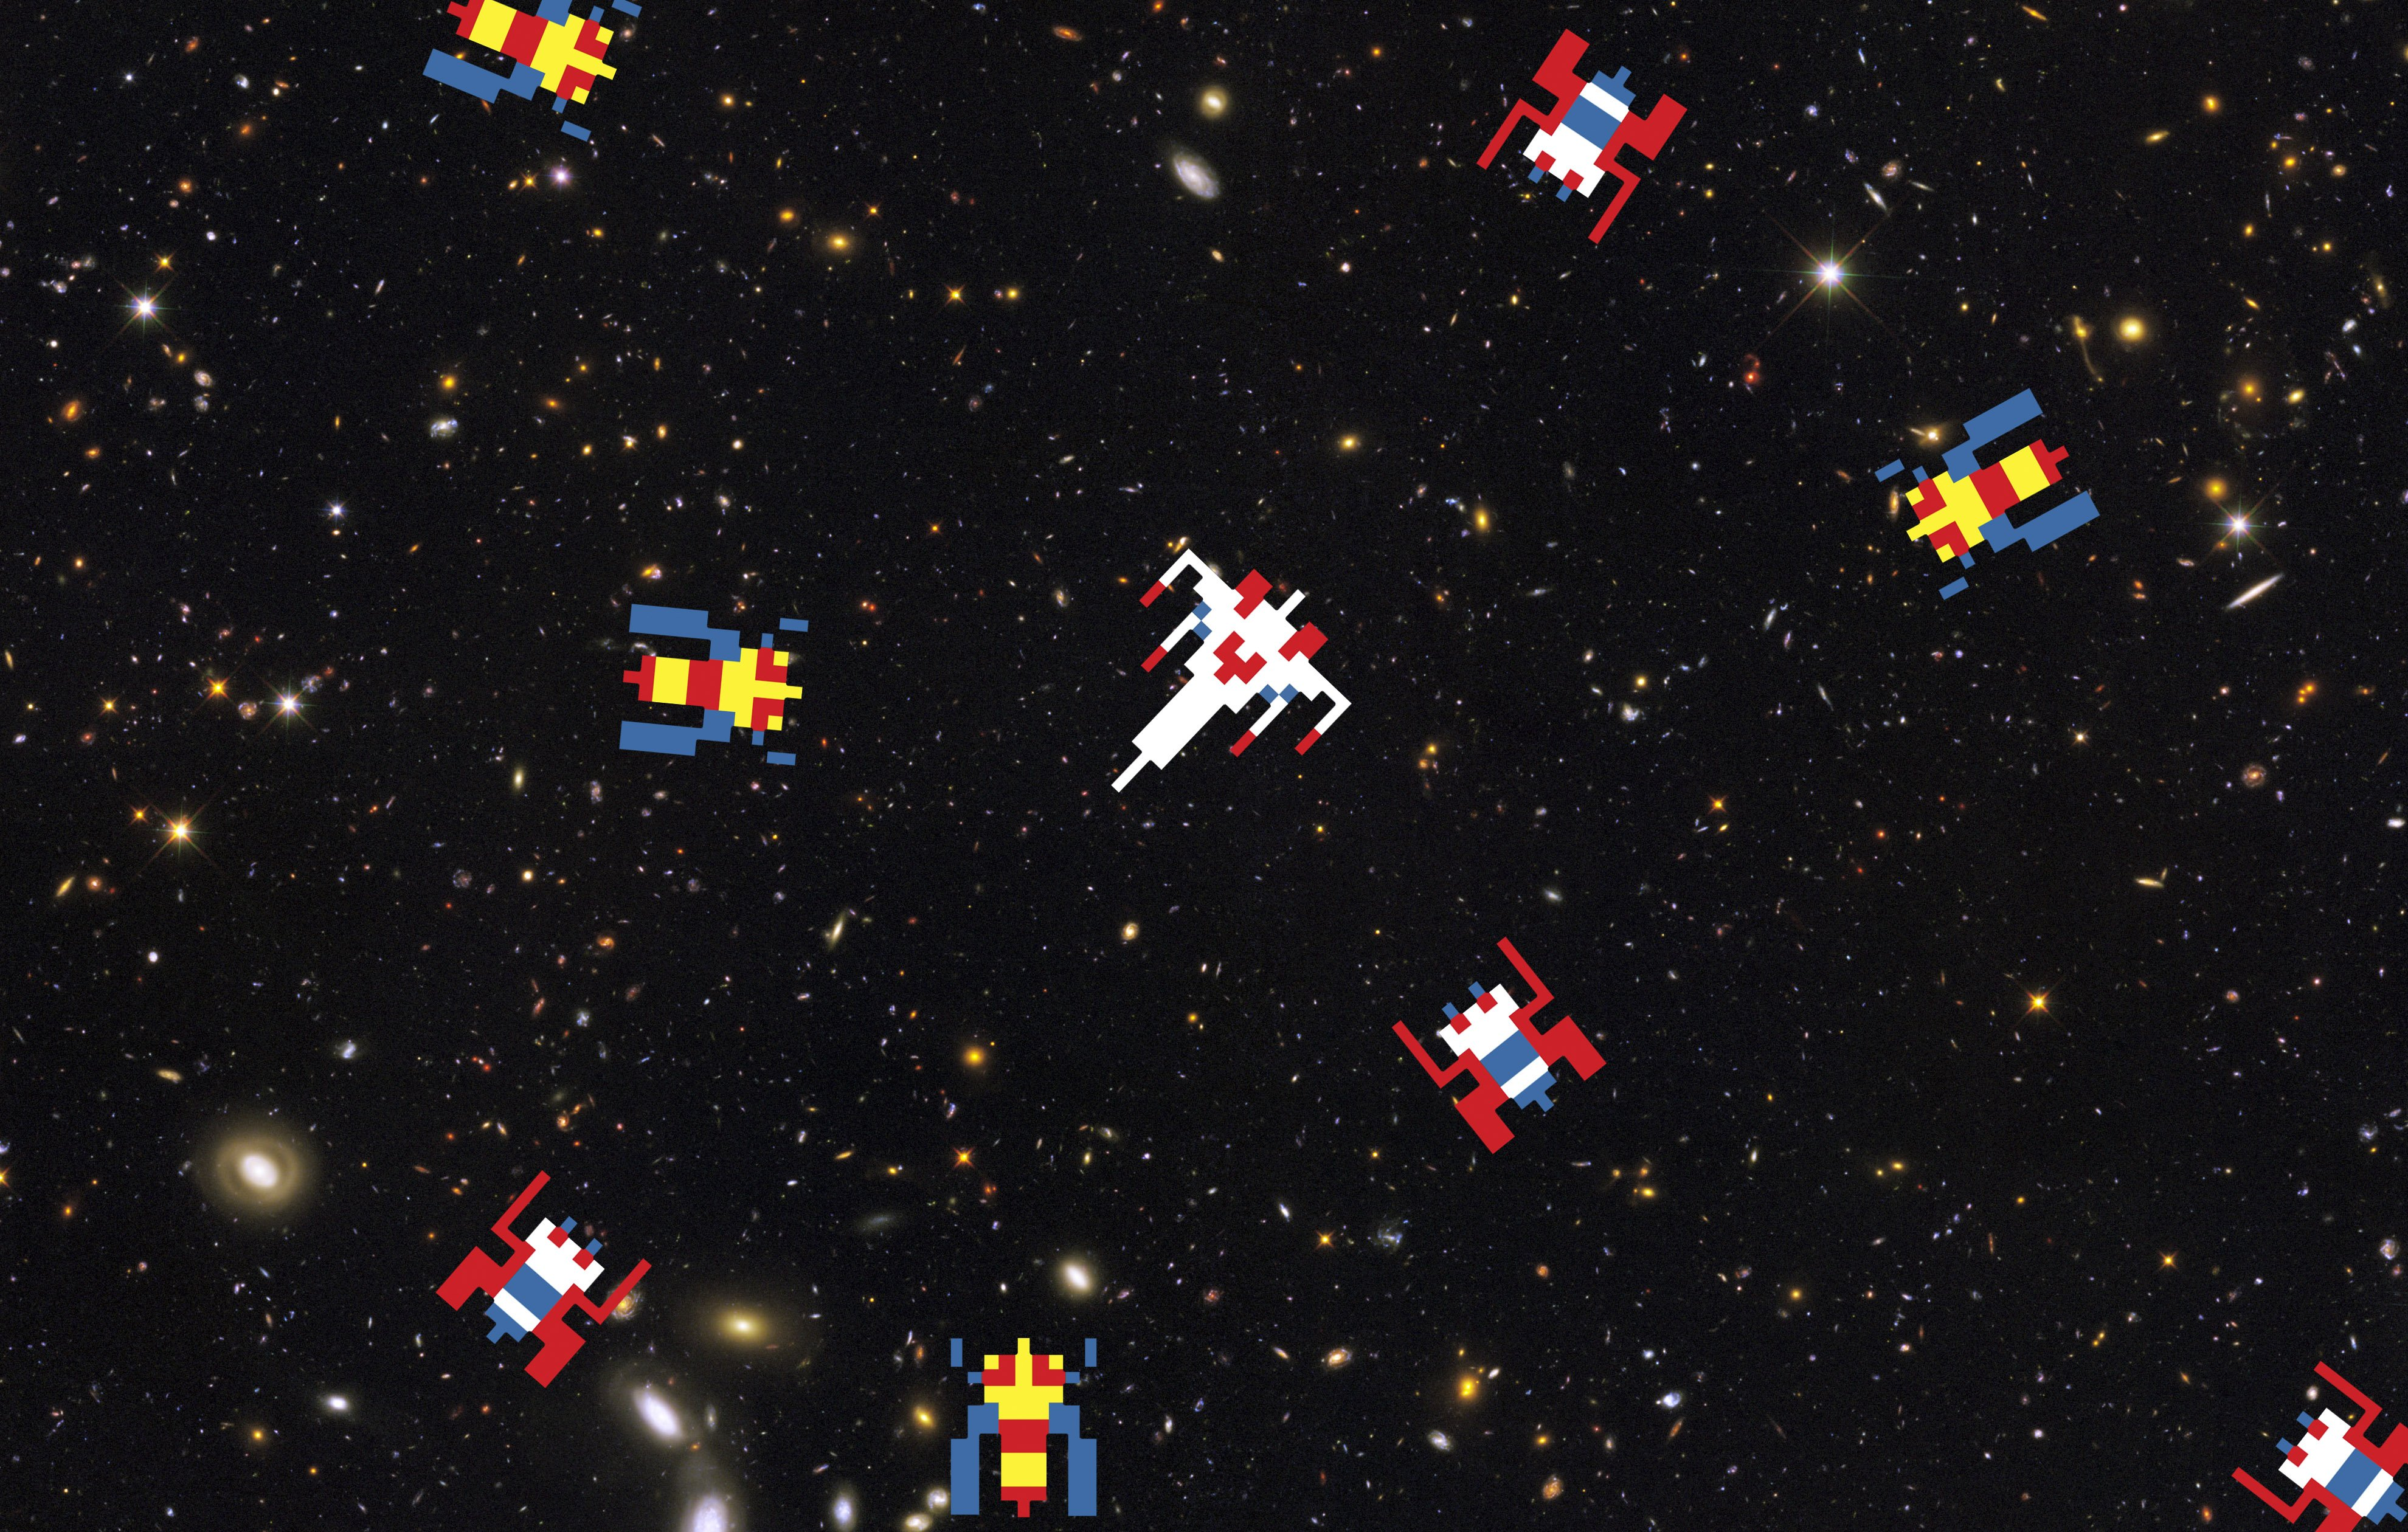 GALAGA sci fi arcade shooter spaceship action atari wallpaper 3960x2520